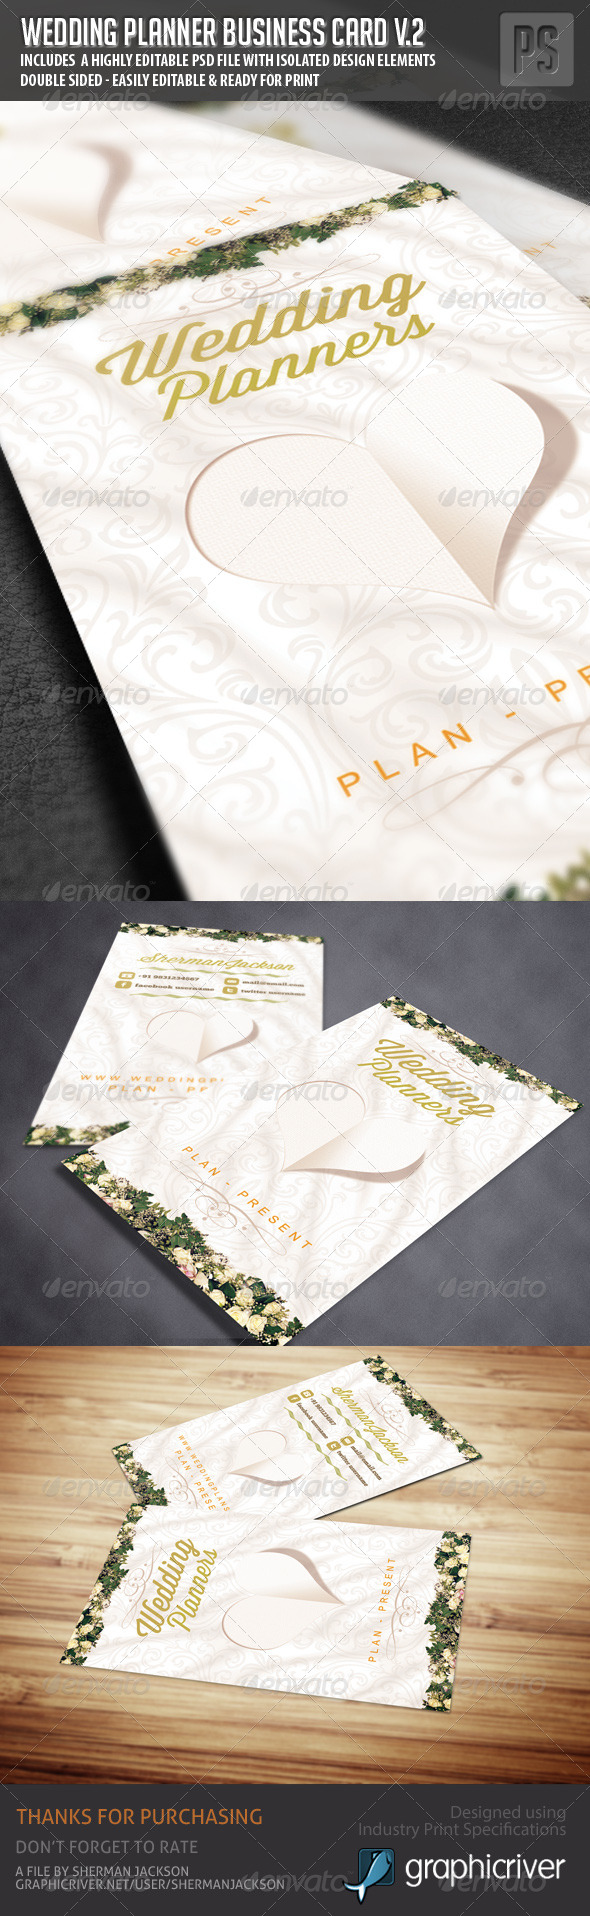 Wedding Planner Business Card V.2 - Industry Specific Business Cards